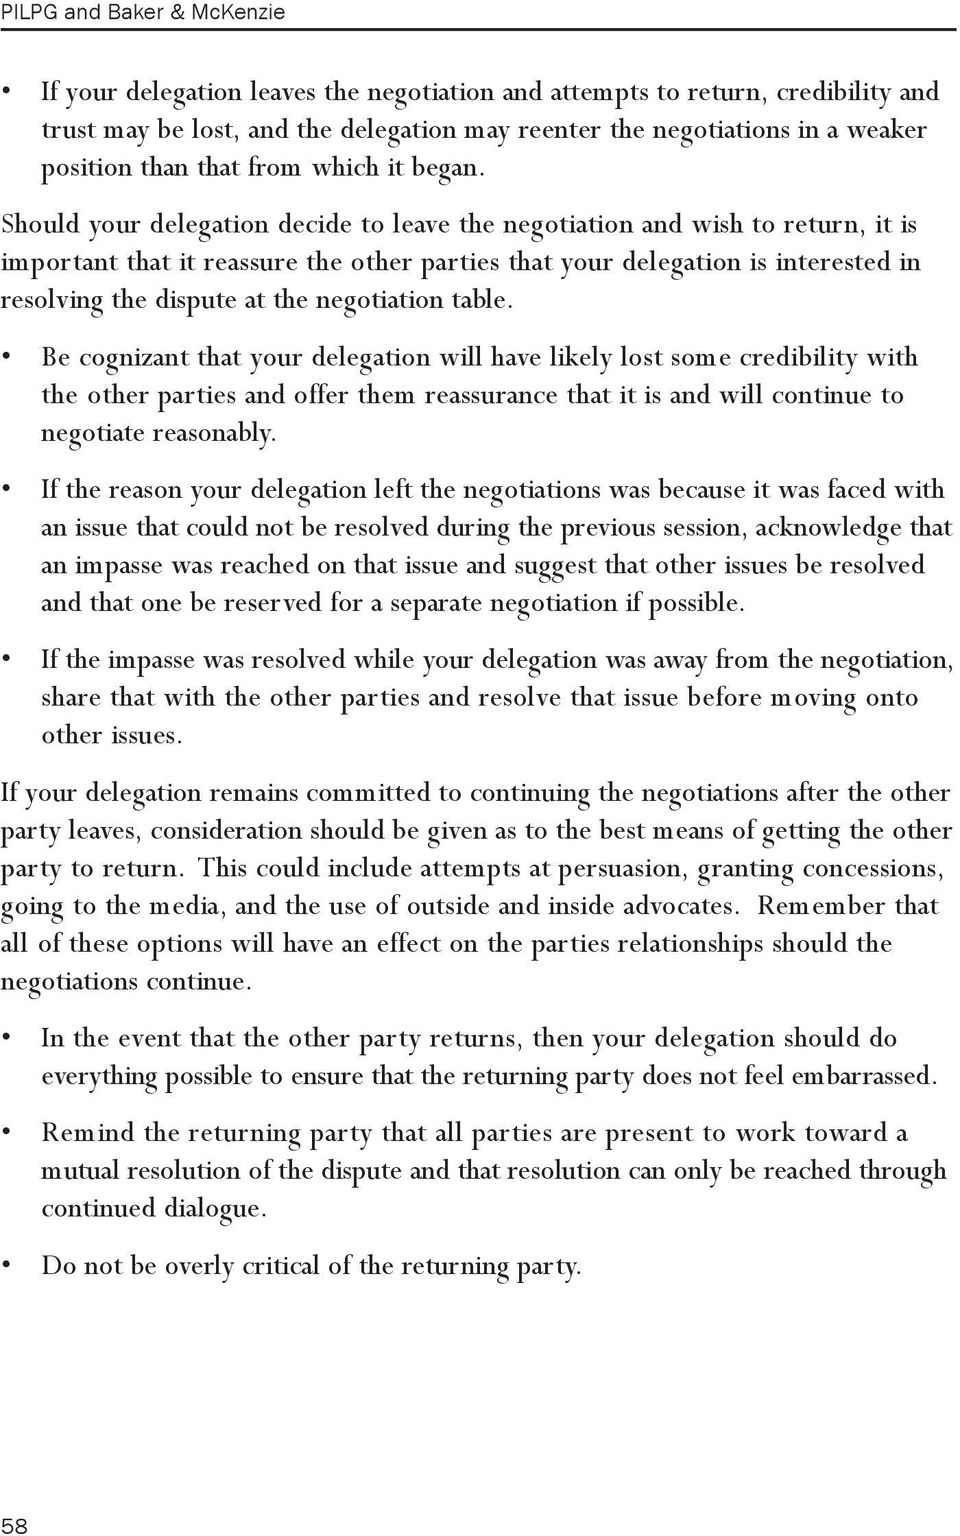 Should your delegation decide to leave the negotiation and wish to return, it is important that it reassure the other parties that your delegation is interested in resolving the dispute at the